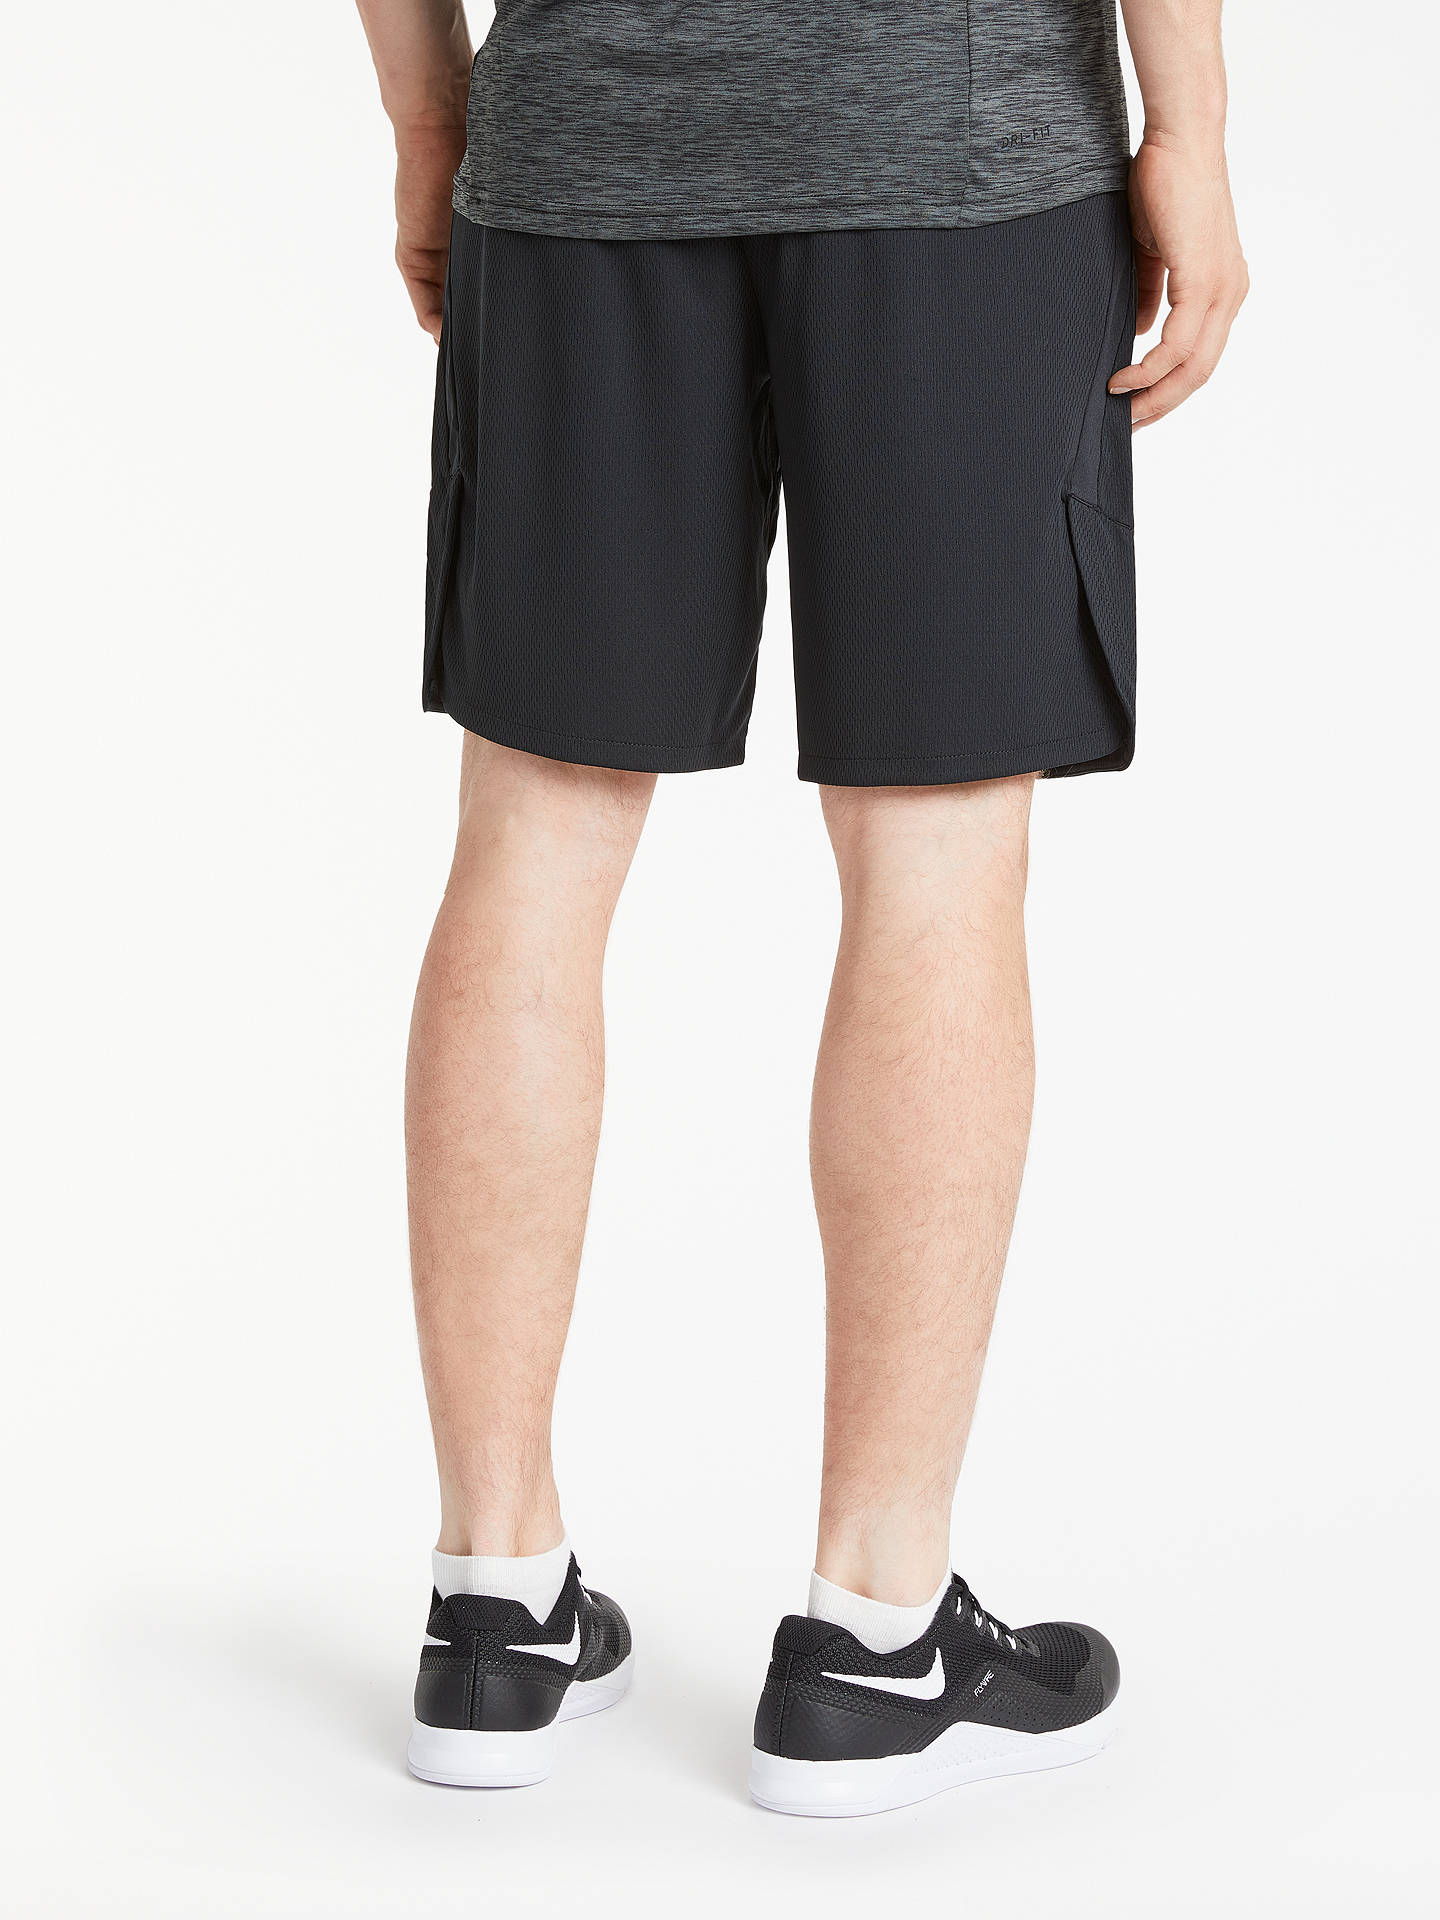 7492c0f6e57f0 ... Buy Nike Dry 4.0 Training Shorts, Black/Dark Grey, S Online at  johnlewis ...